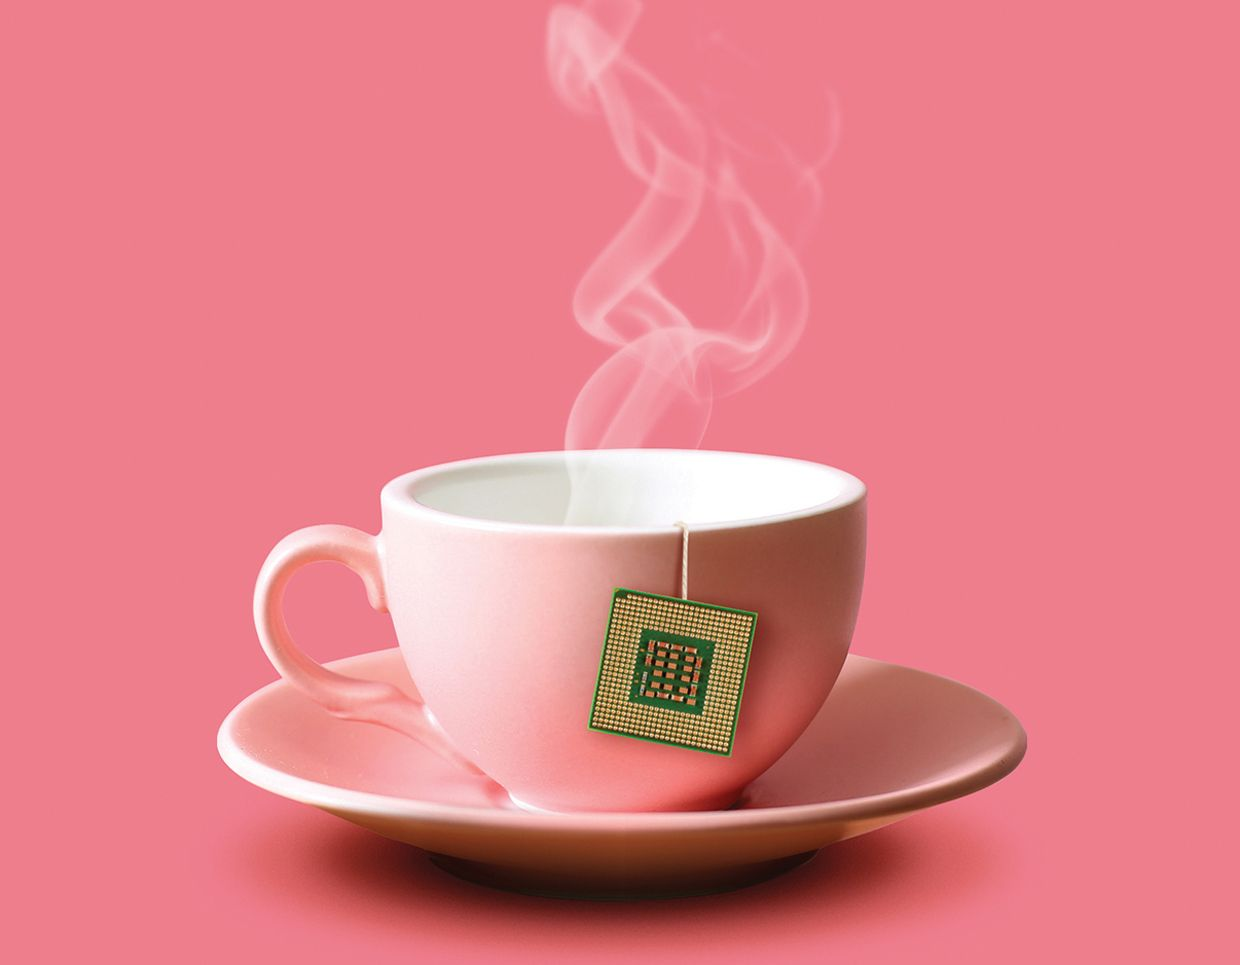 A cup of tea with a microchip at the end of the teabag string.